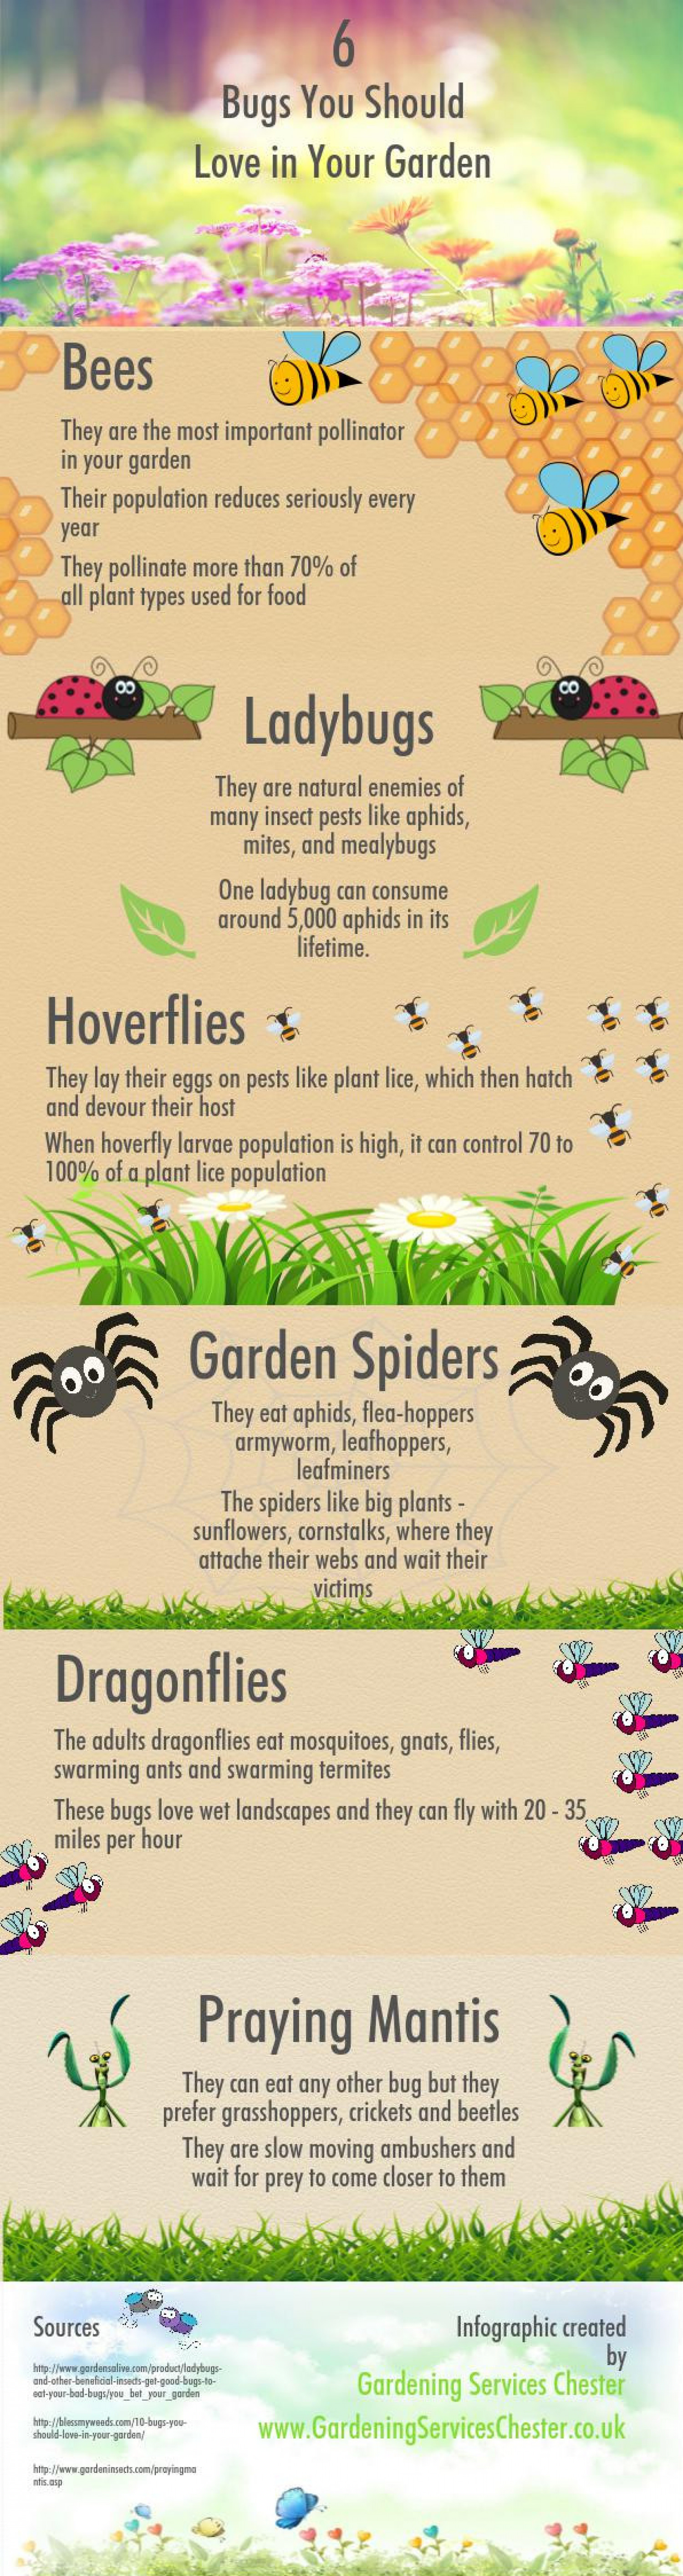 6 Bugs You Should Love in Your Garden Infographic